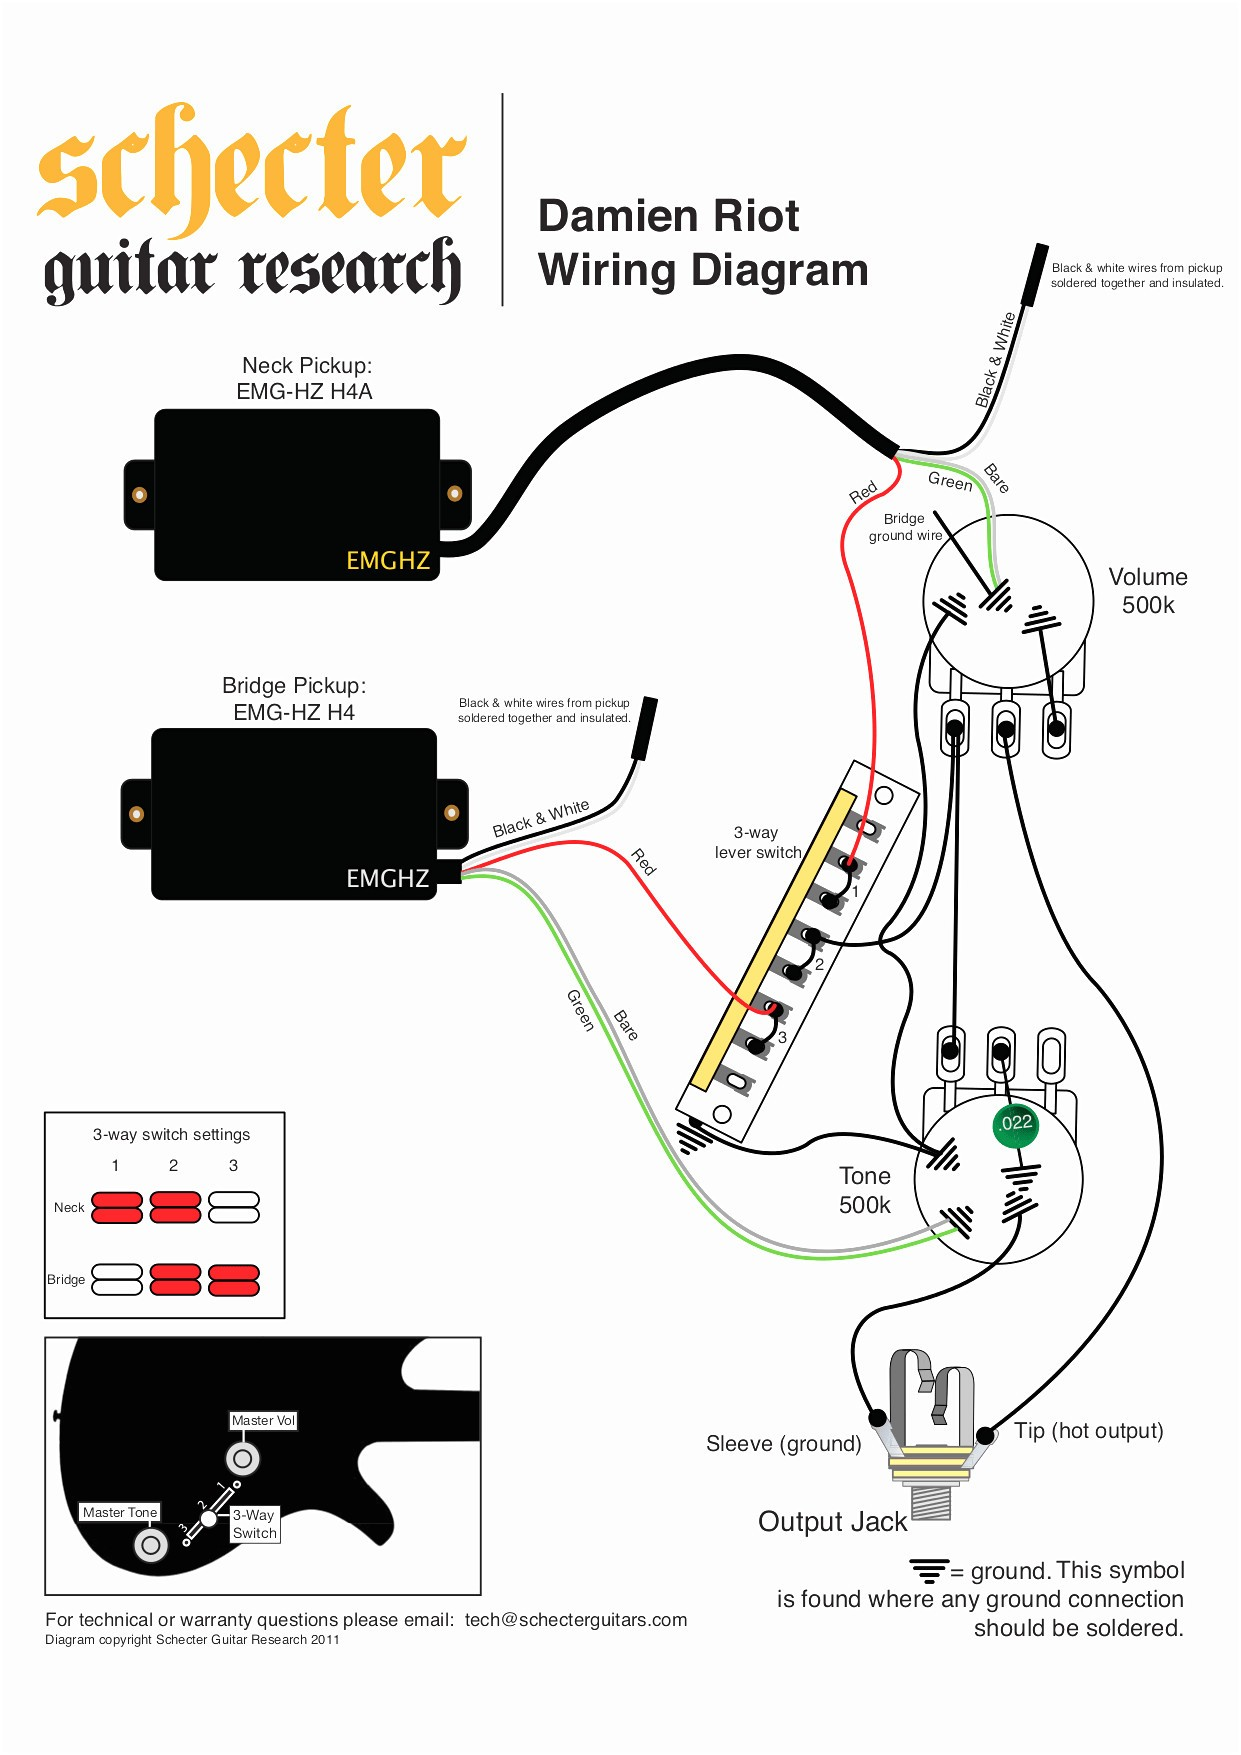 h4 halogen bulb wiring diagram 2000 ford focus exhaust system 6000k xentec library